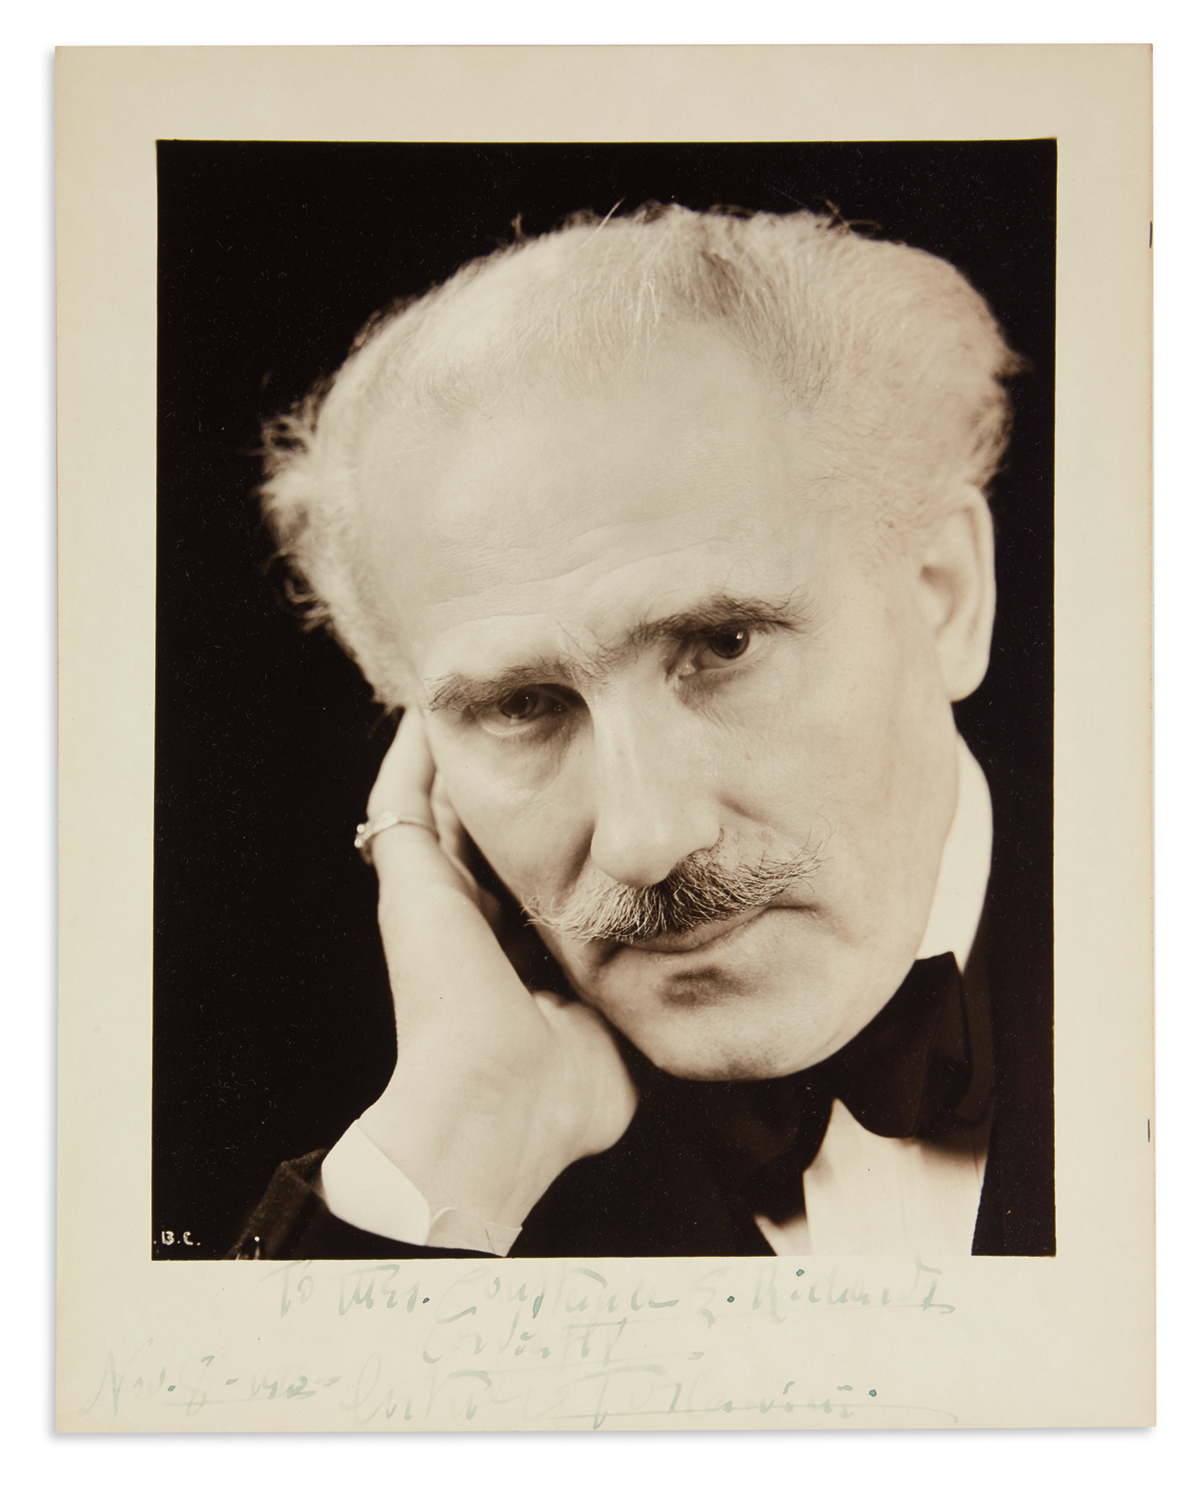 TOSCANINI-ARTURO-Photograph-Signed-and-Inscribed-To-Mrs-Cons